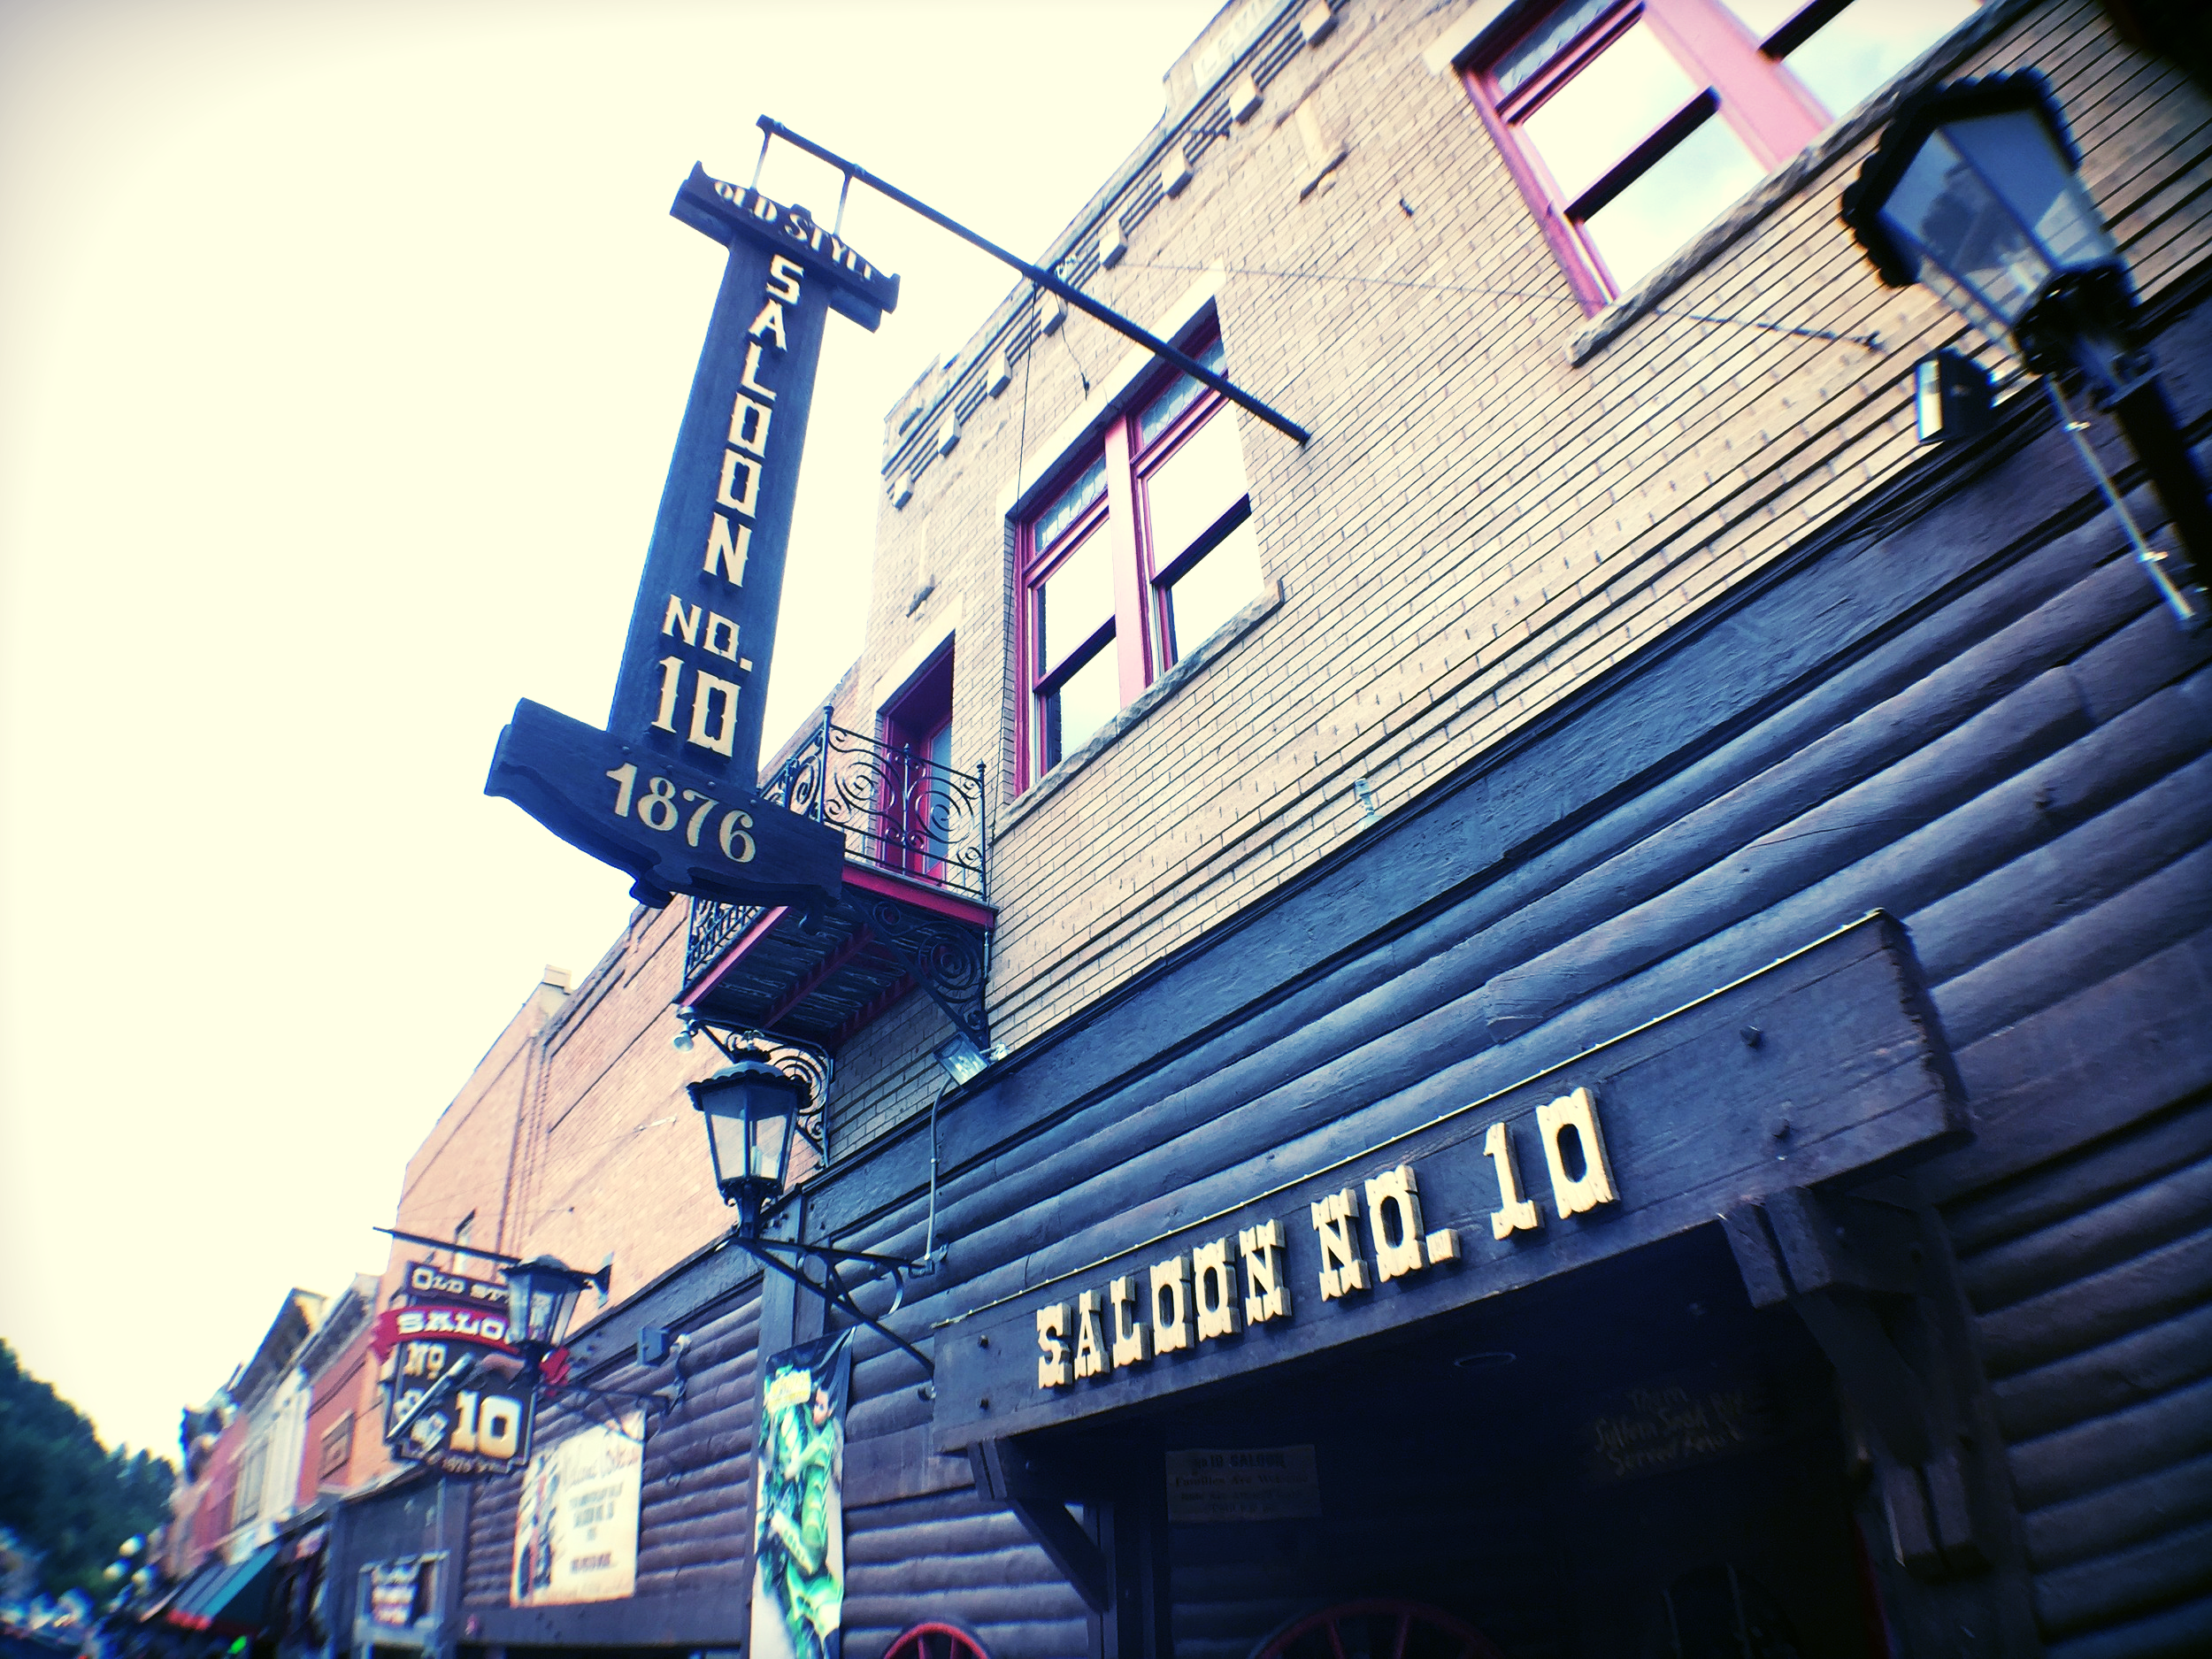 Saloon No. 10, an outlaw hangout during the Gold Rush days and Wild Bill Hickok's favorite poker joint in Deadwood